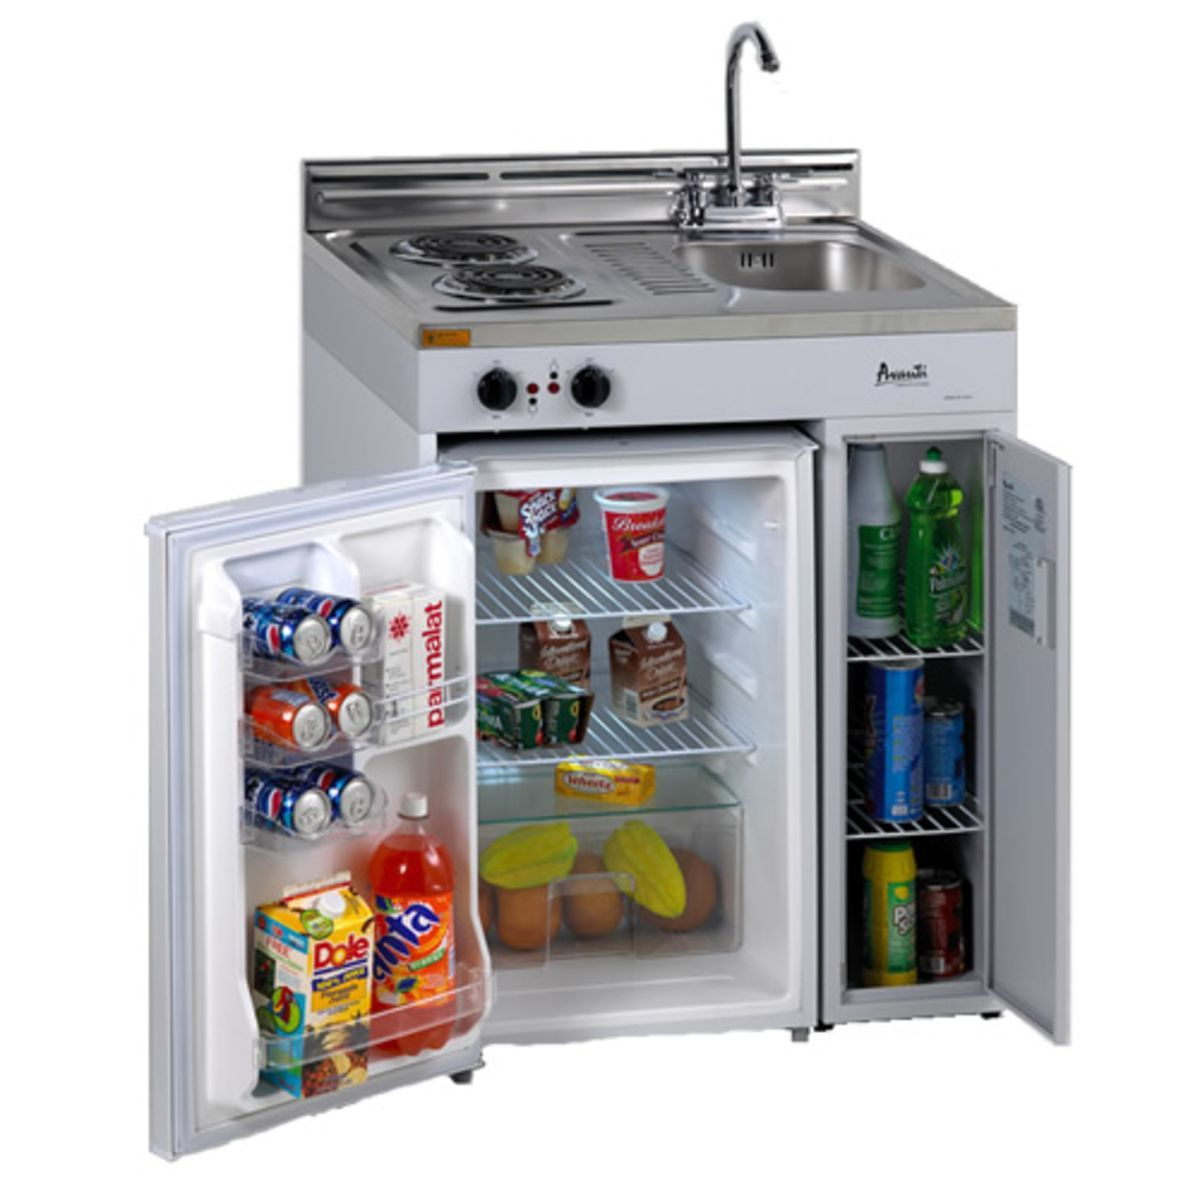 Avanti 30 Inch Complete Compact Kitchen with Refrigerator